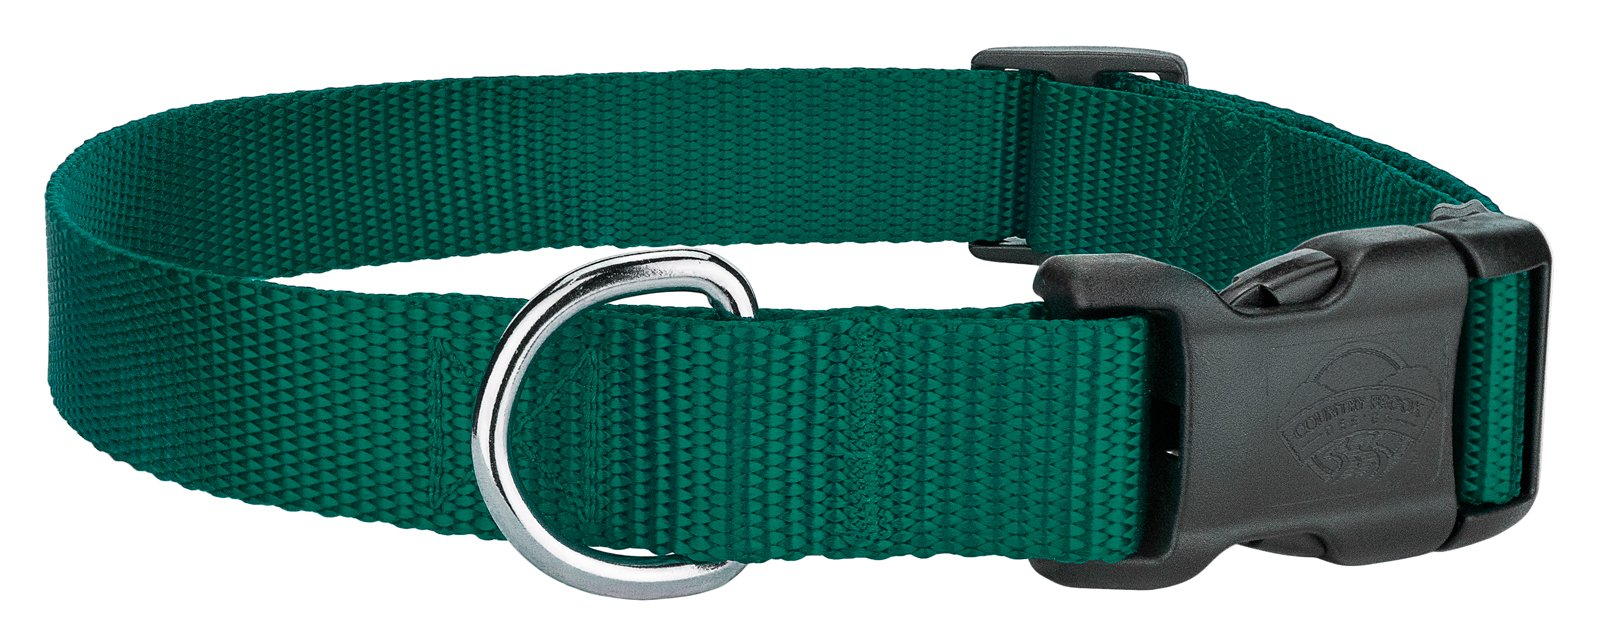 Country Brook Design 25 - Deluxe Nylon Dog Collars - Green - Extra Small